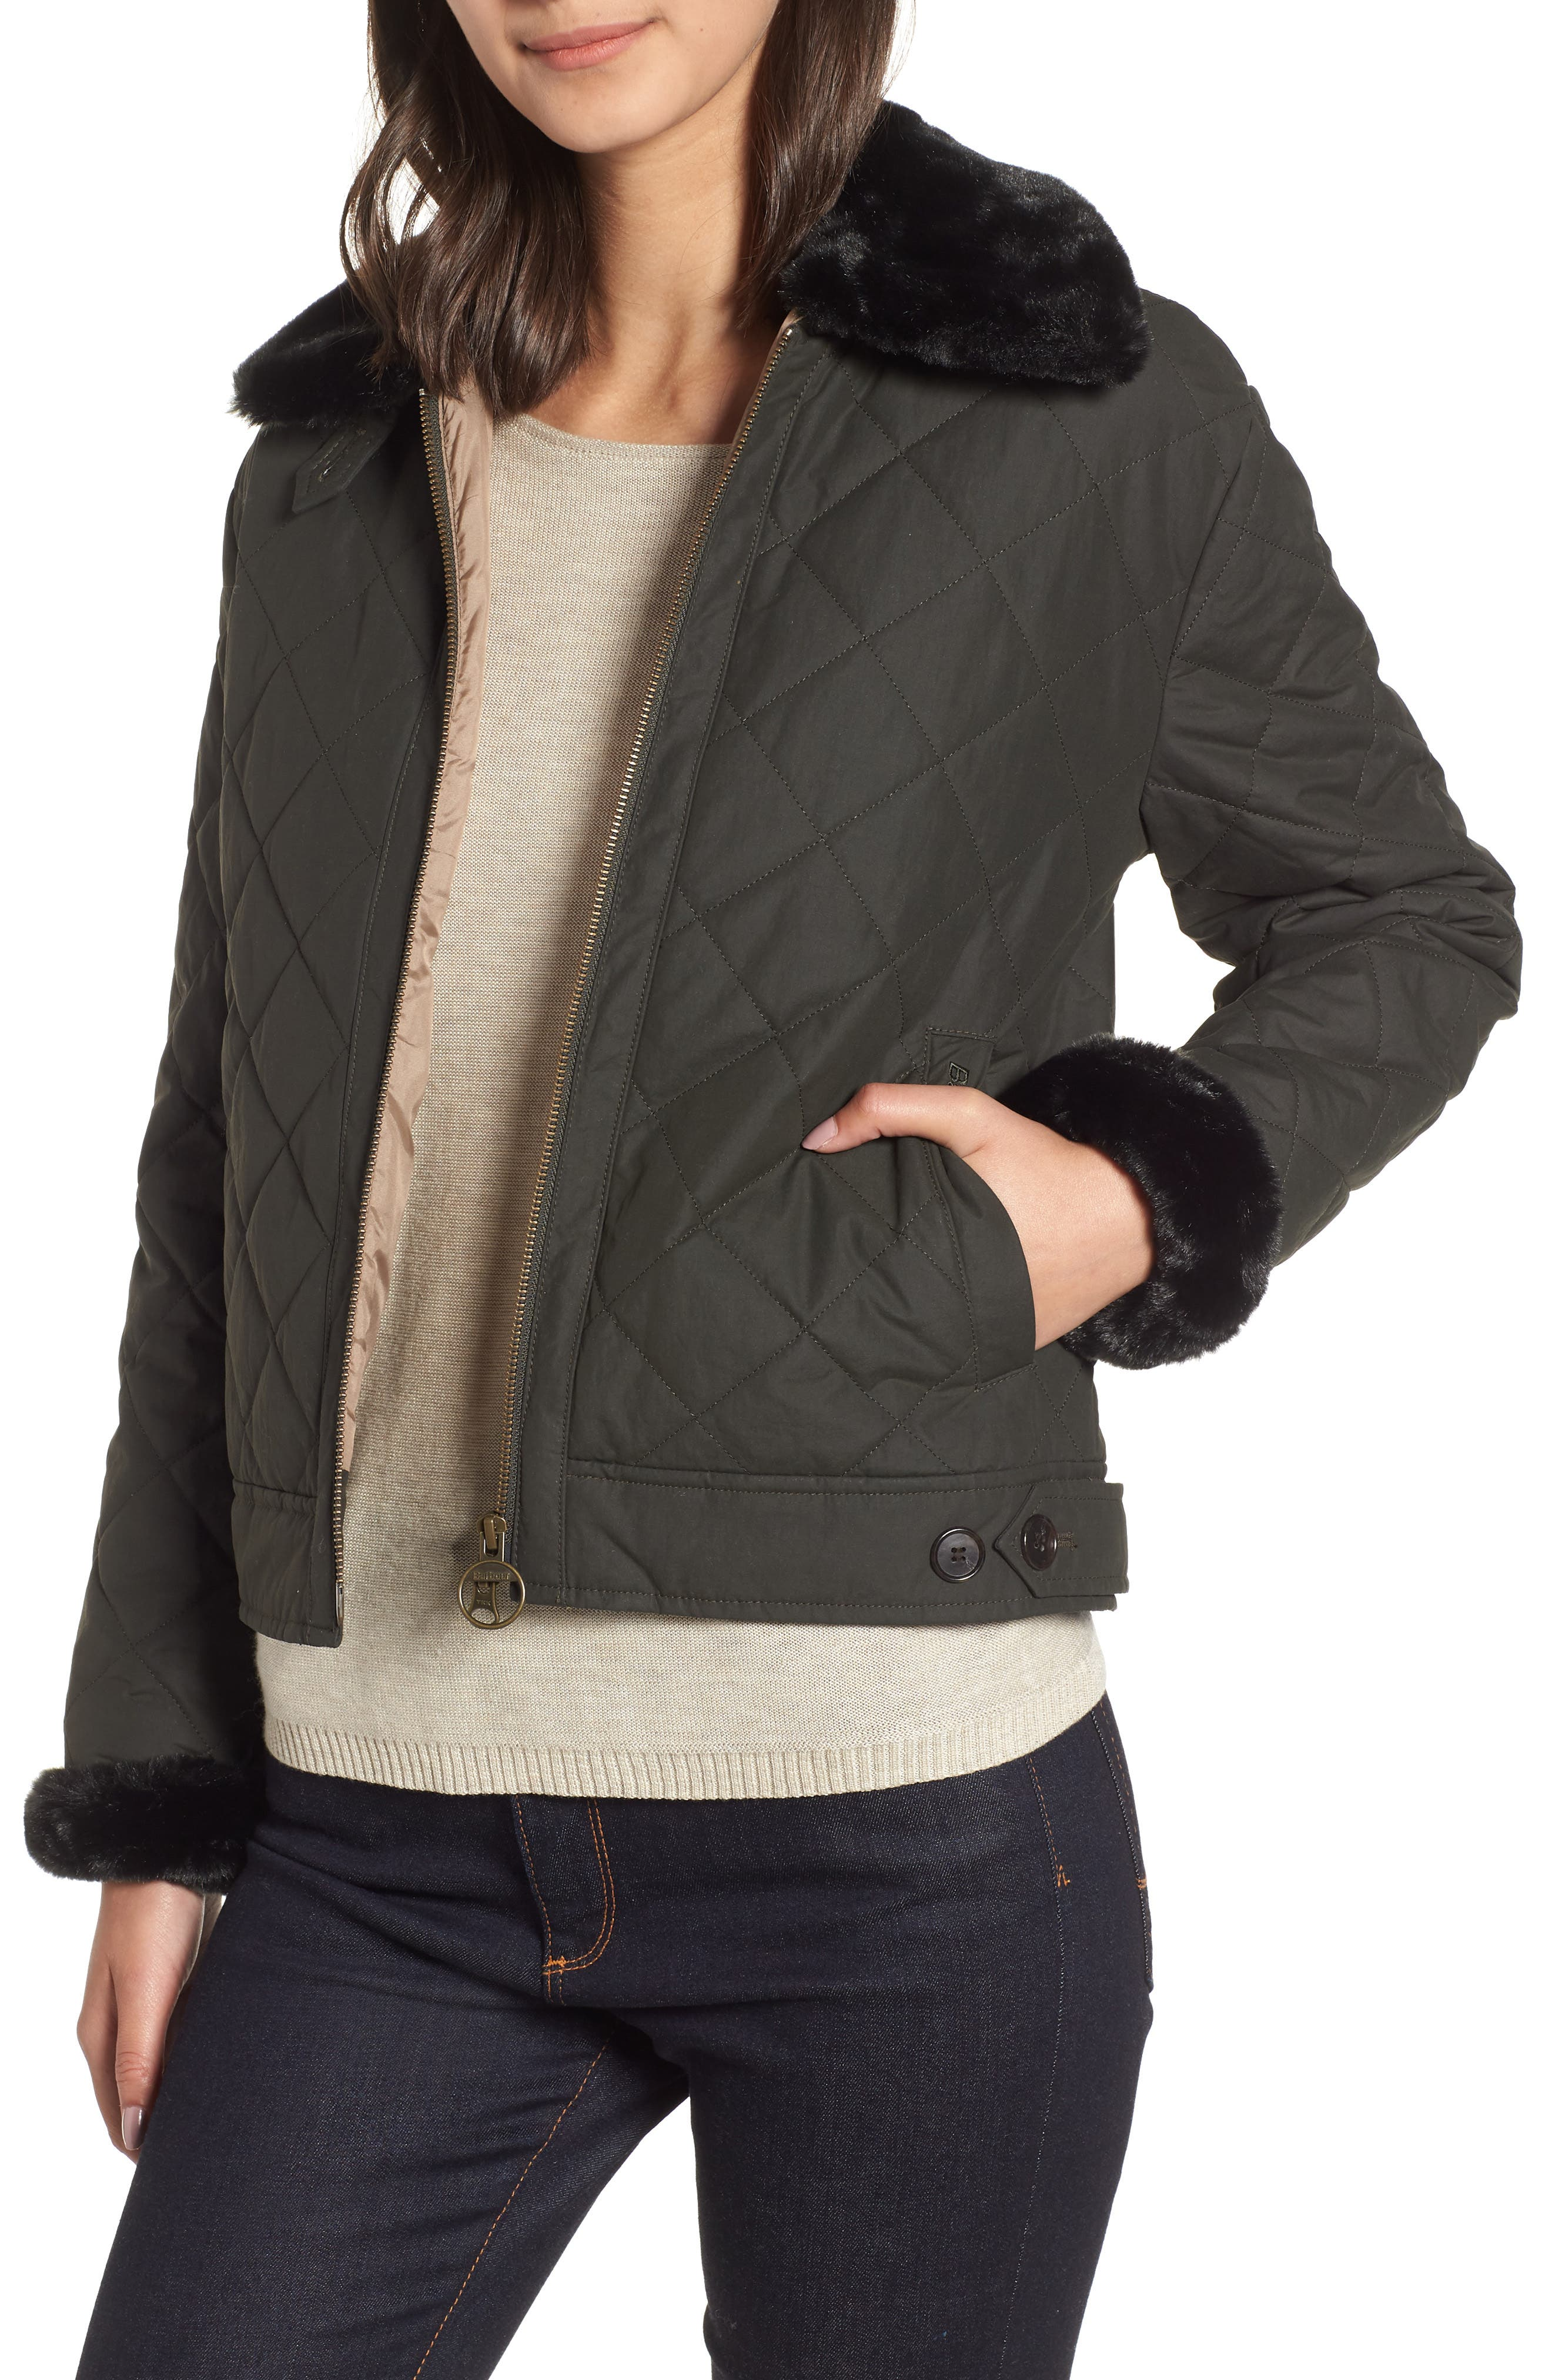 Barbour Tetbury Quilted Jacket, US / 10 UK - Green